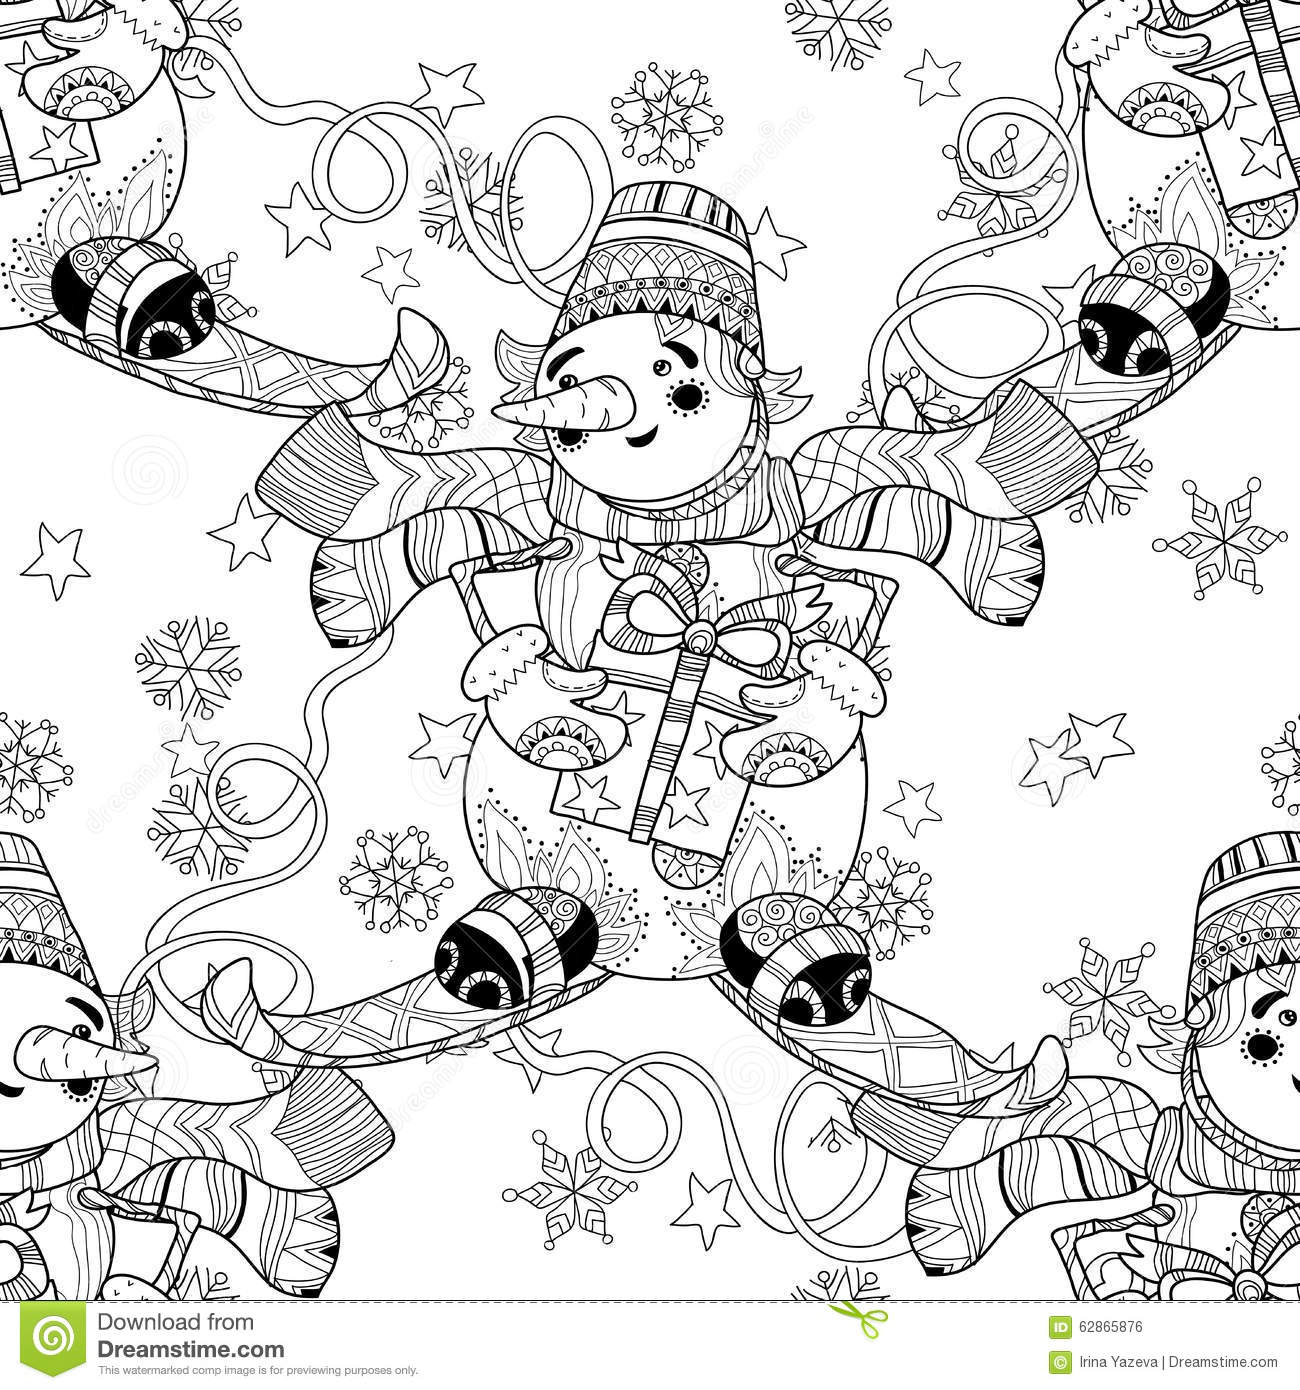 Coloring Page Of Alligator Showing Thumbs Up as well Centro De Mesa Olafme Encantannn Los together with 3369 further 8460 in addition Dinotrux Coloring Pages. on cute snowman coloring pages